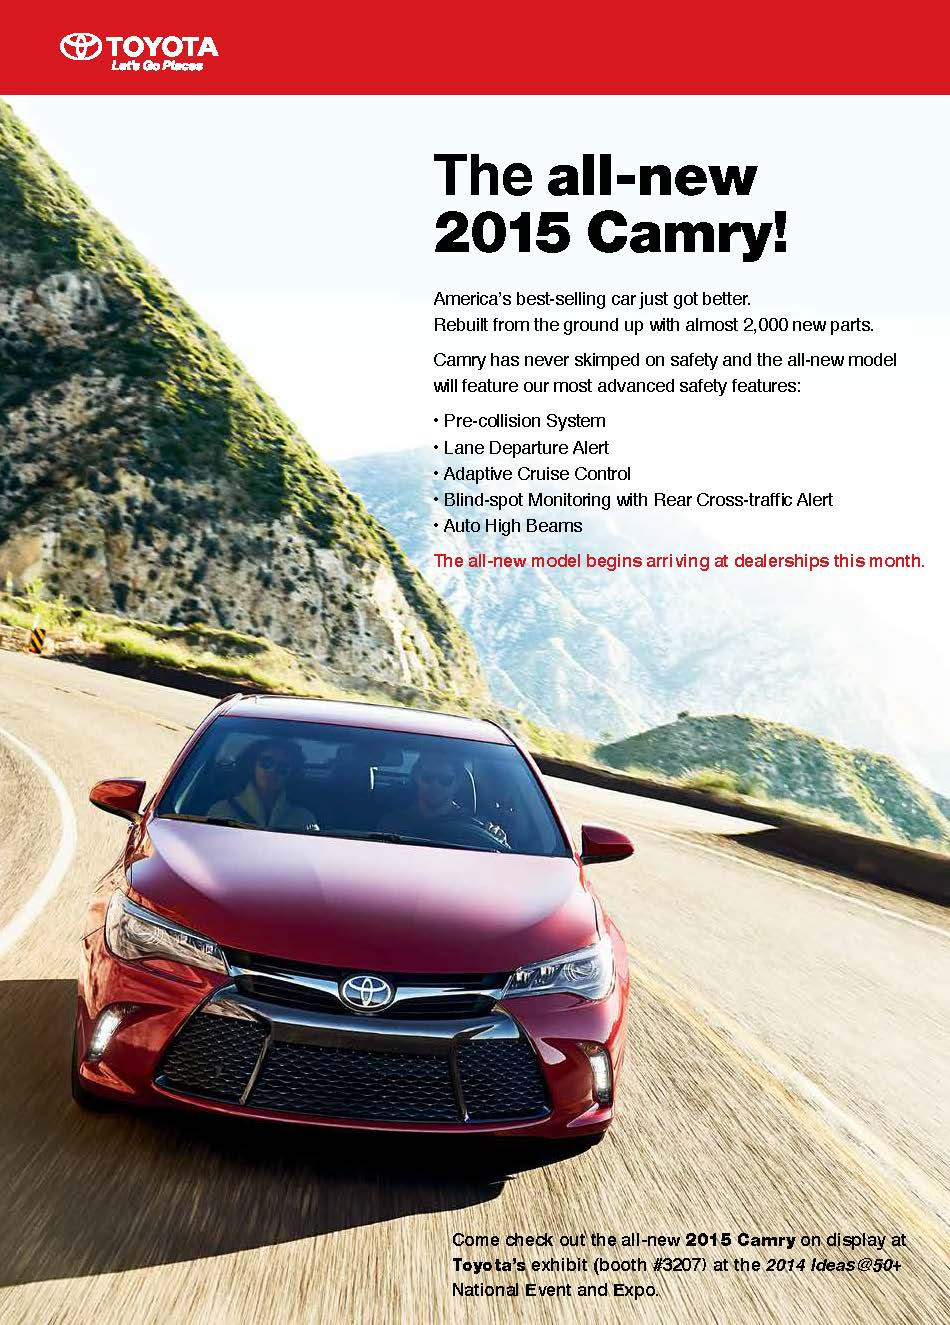 AARP Magazine ad for Toyota